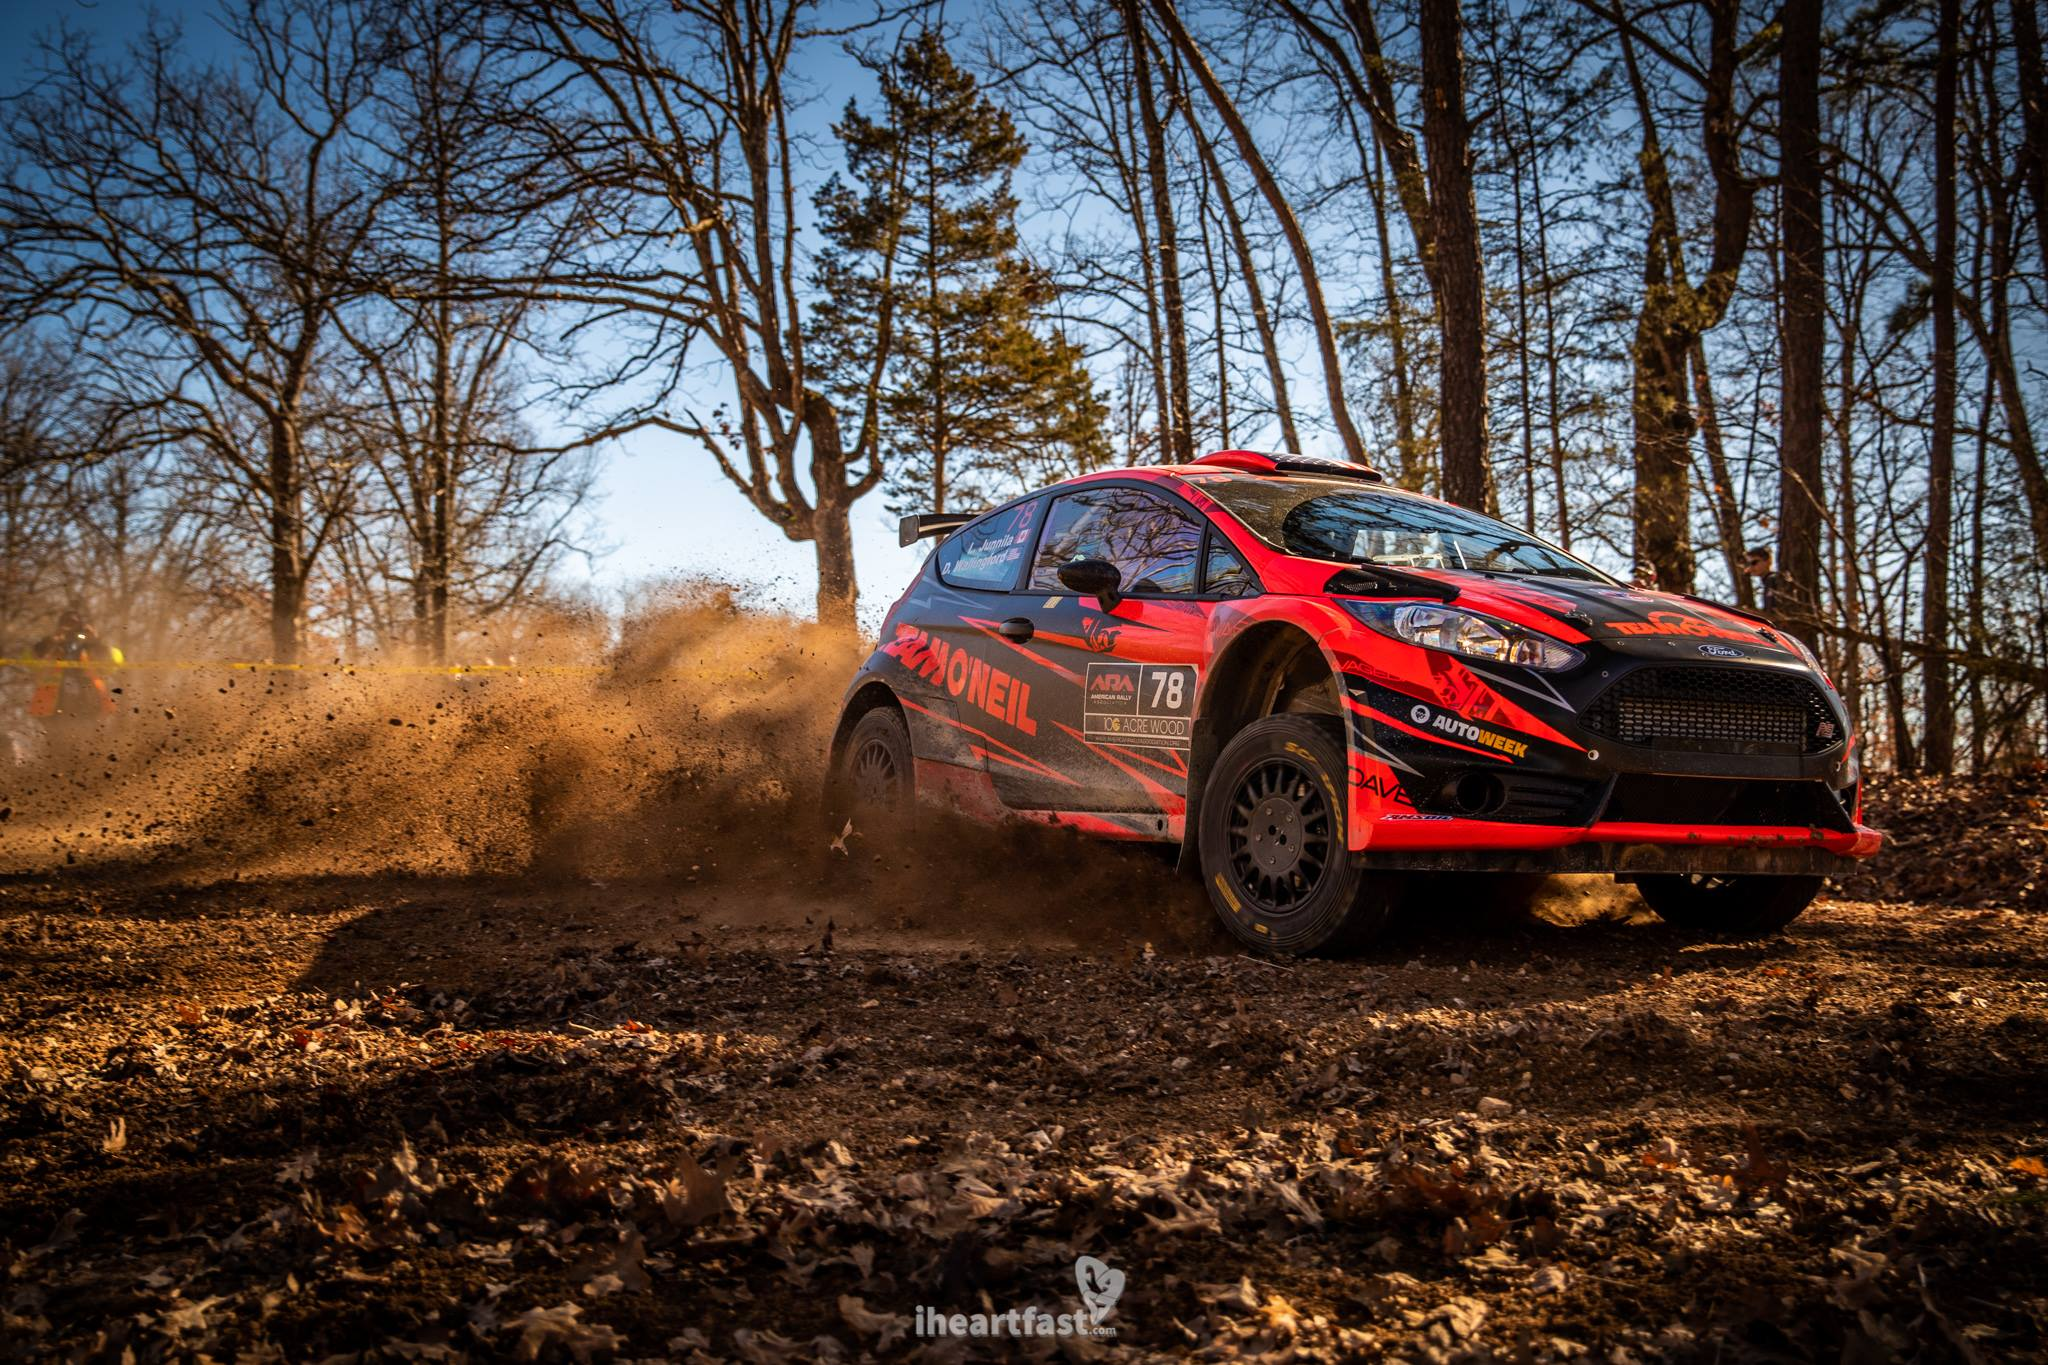 Dave Wallingford and Leanne Junilla make their return to 100AW in a Ford Fiesta R5